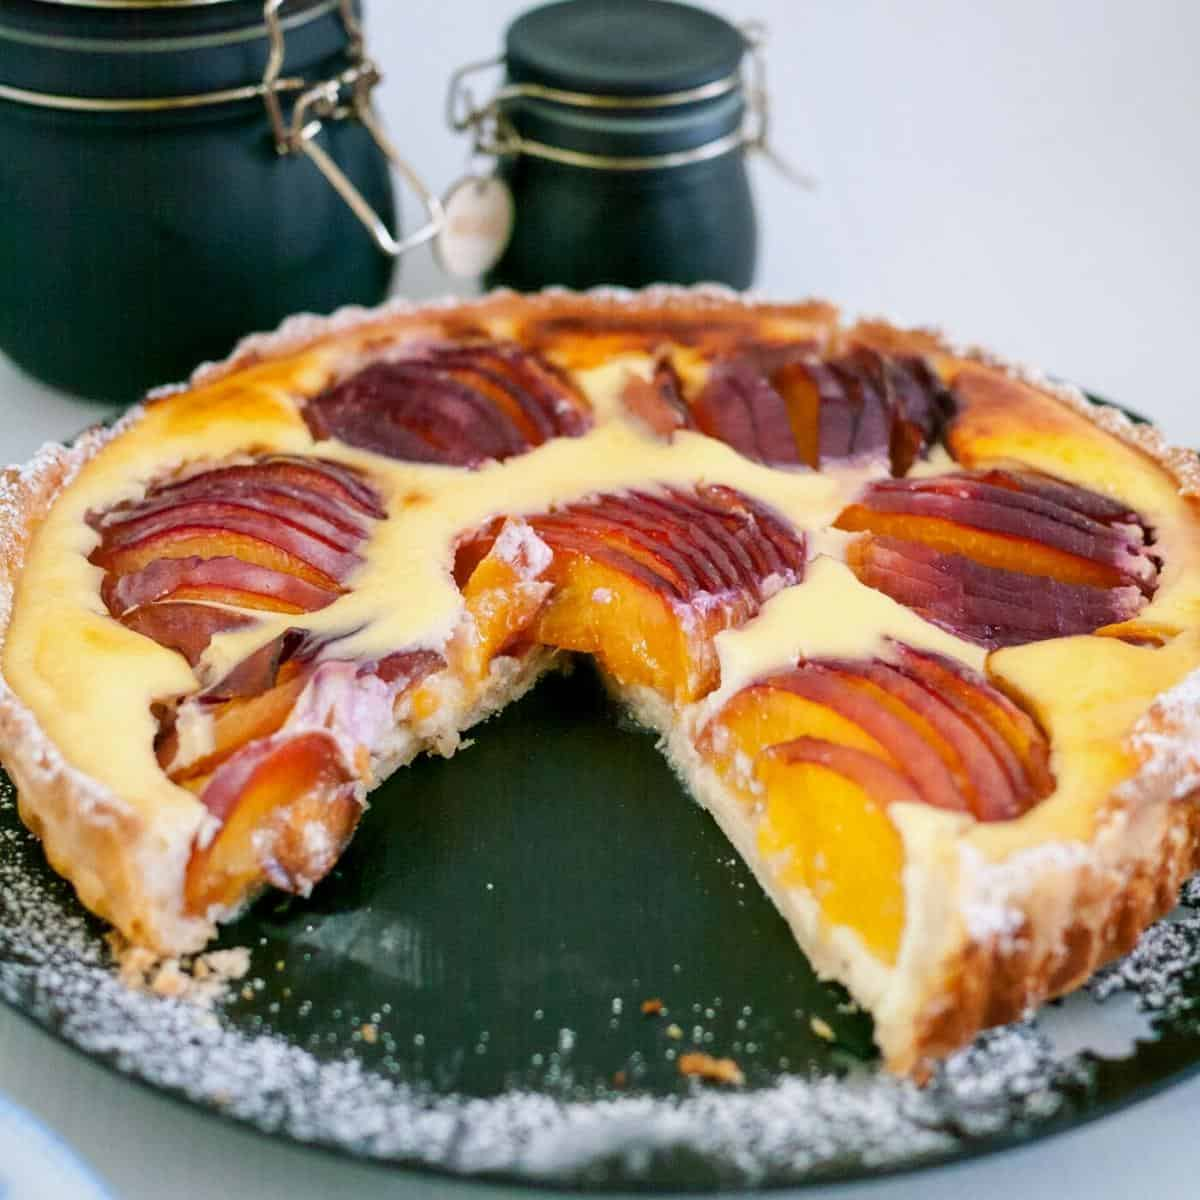 A tart with nectarines on a table.